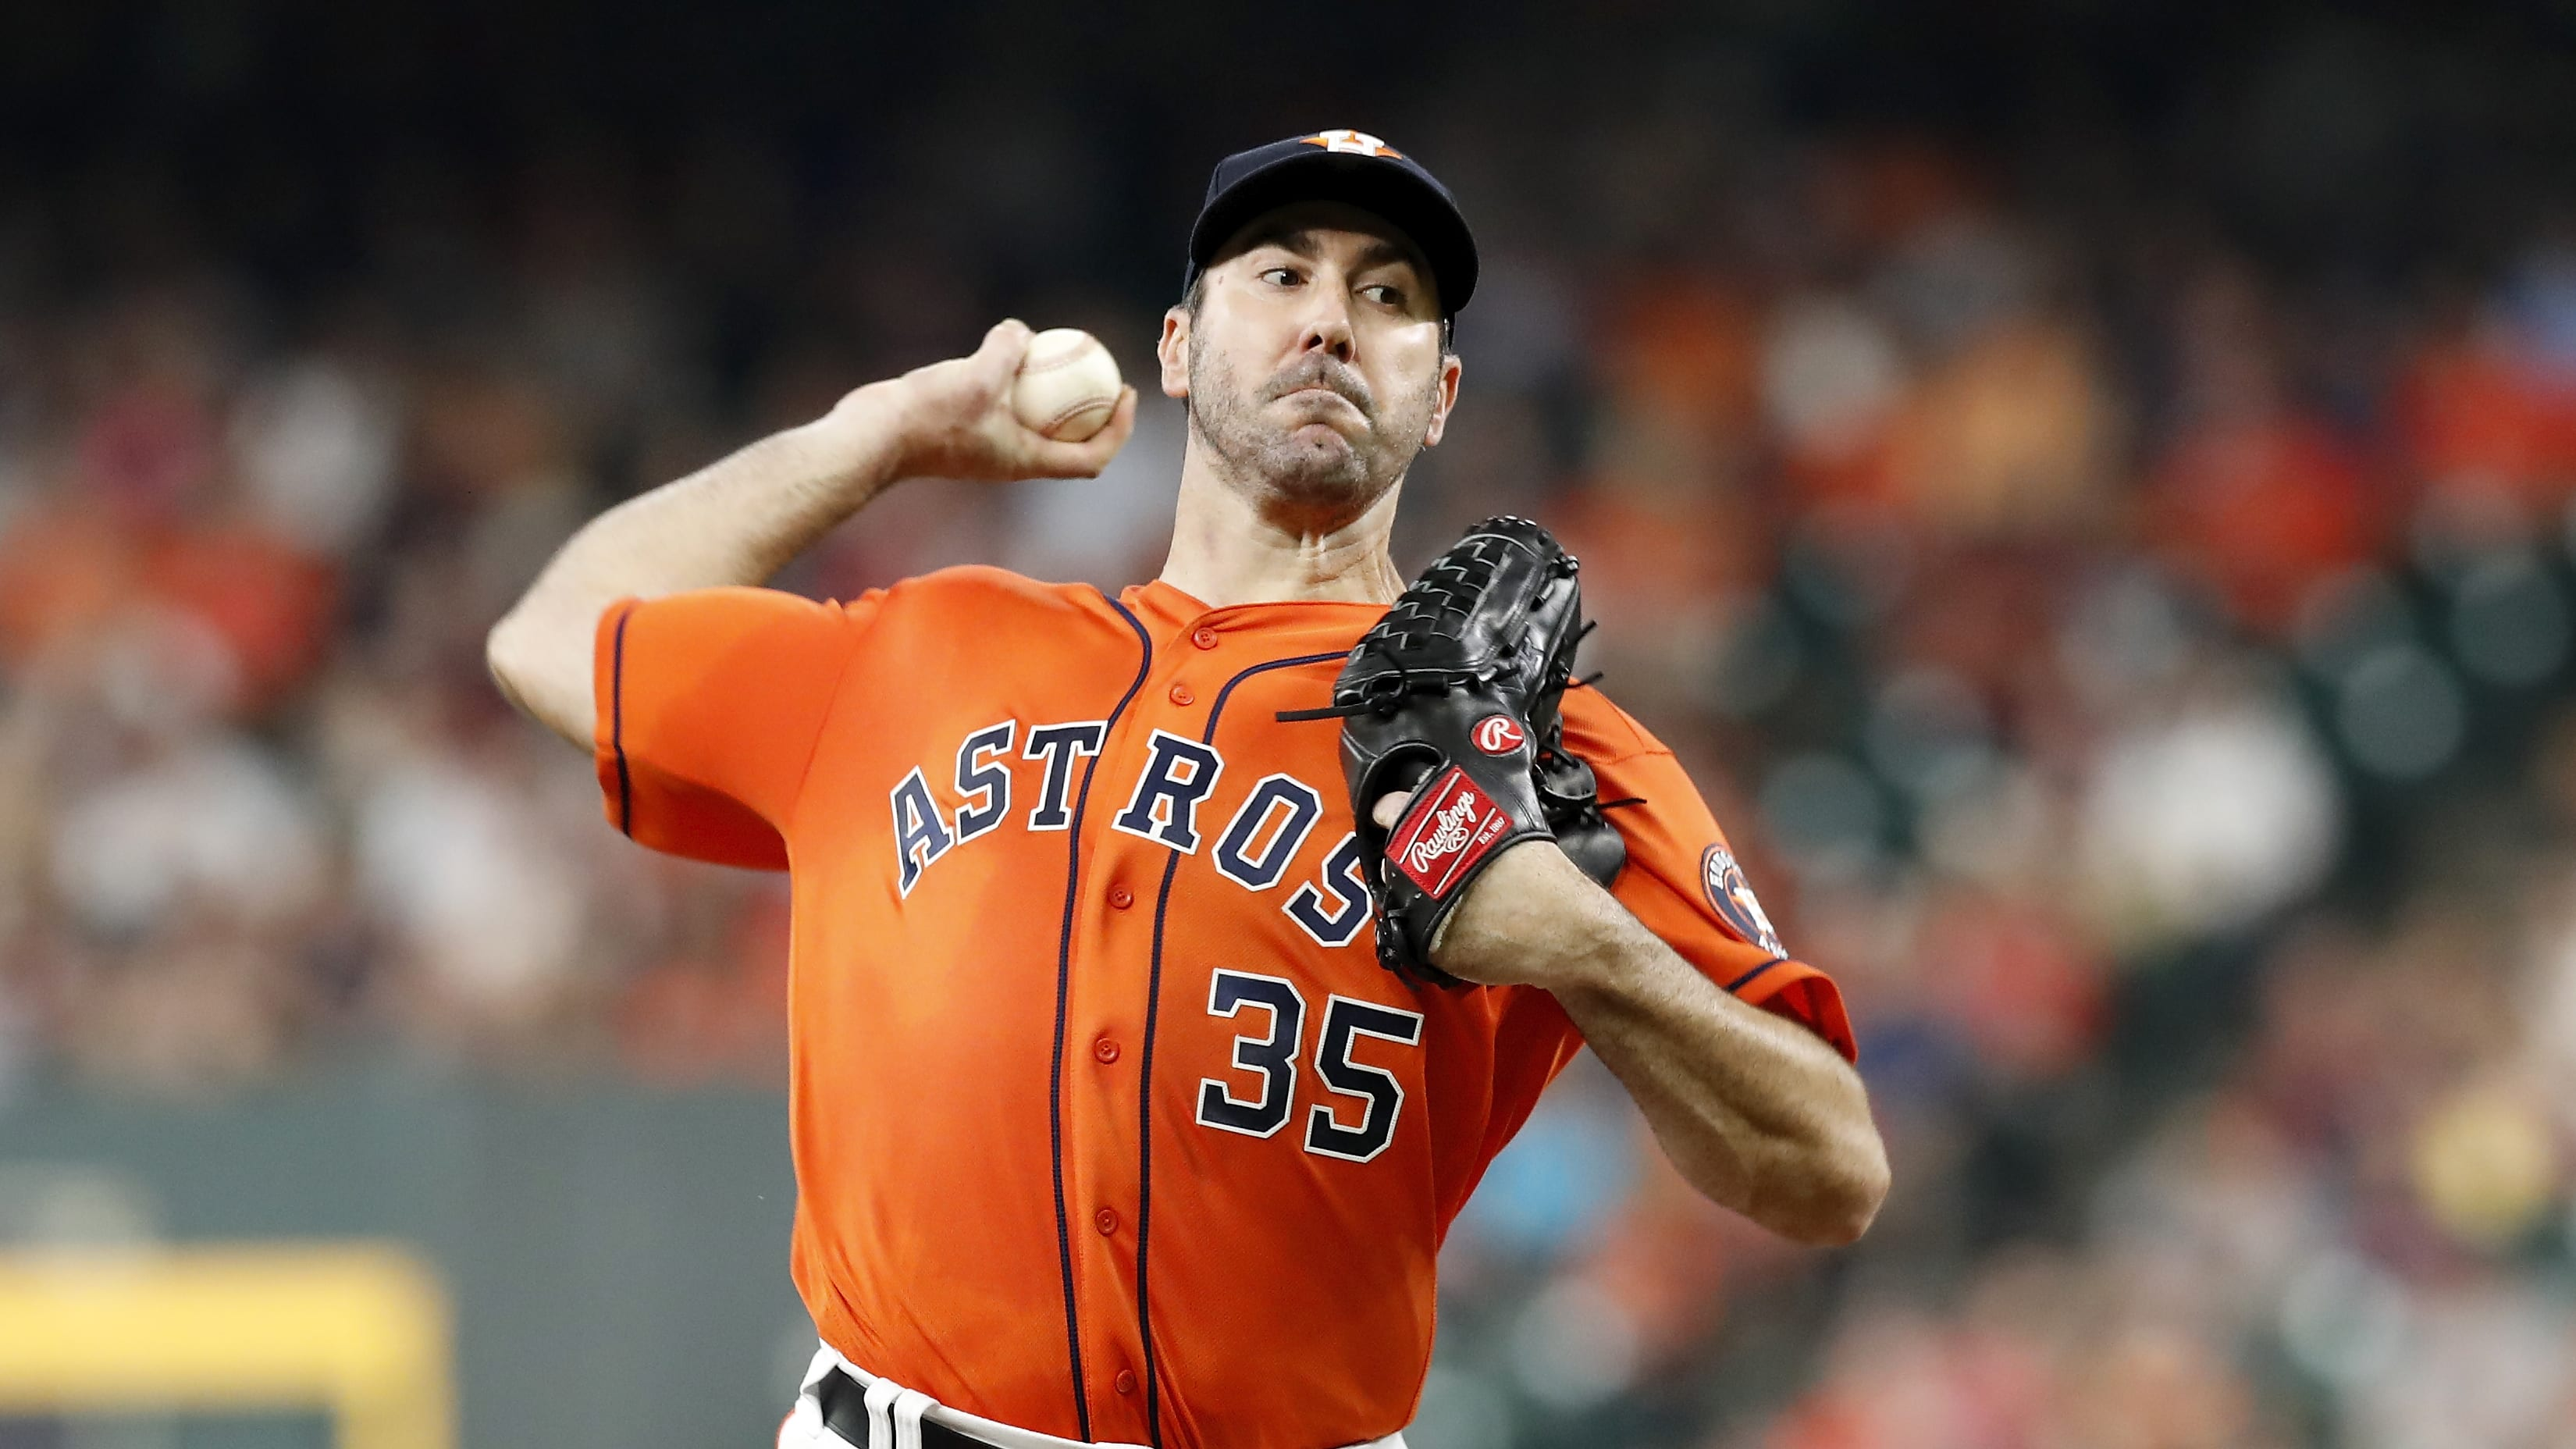 HOUSTON, TX - MAY 10:  Justin Verlander #35 of the Houston Astros pitches in the second inning against the Texas Rangers at Minute Maid Park on May 10, 2019 in Houston, Texas.  (Photo by Tim Warner/Getty Images)